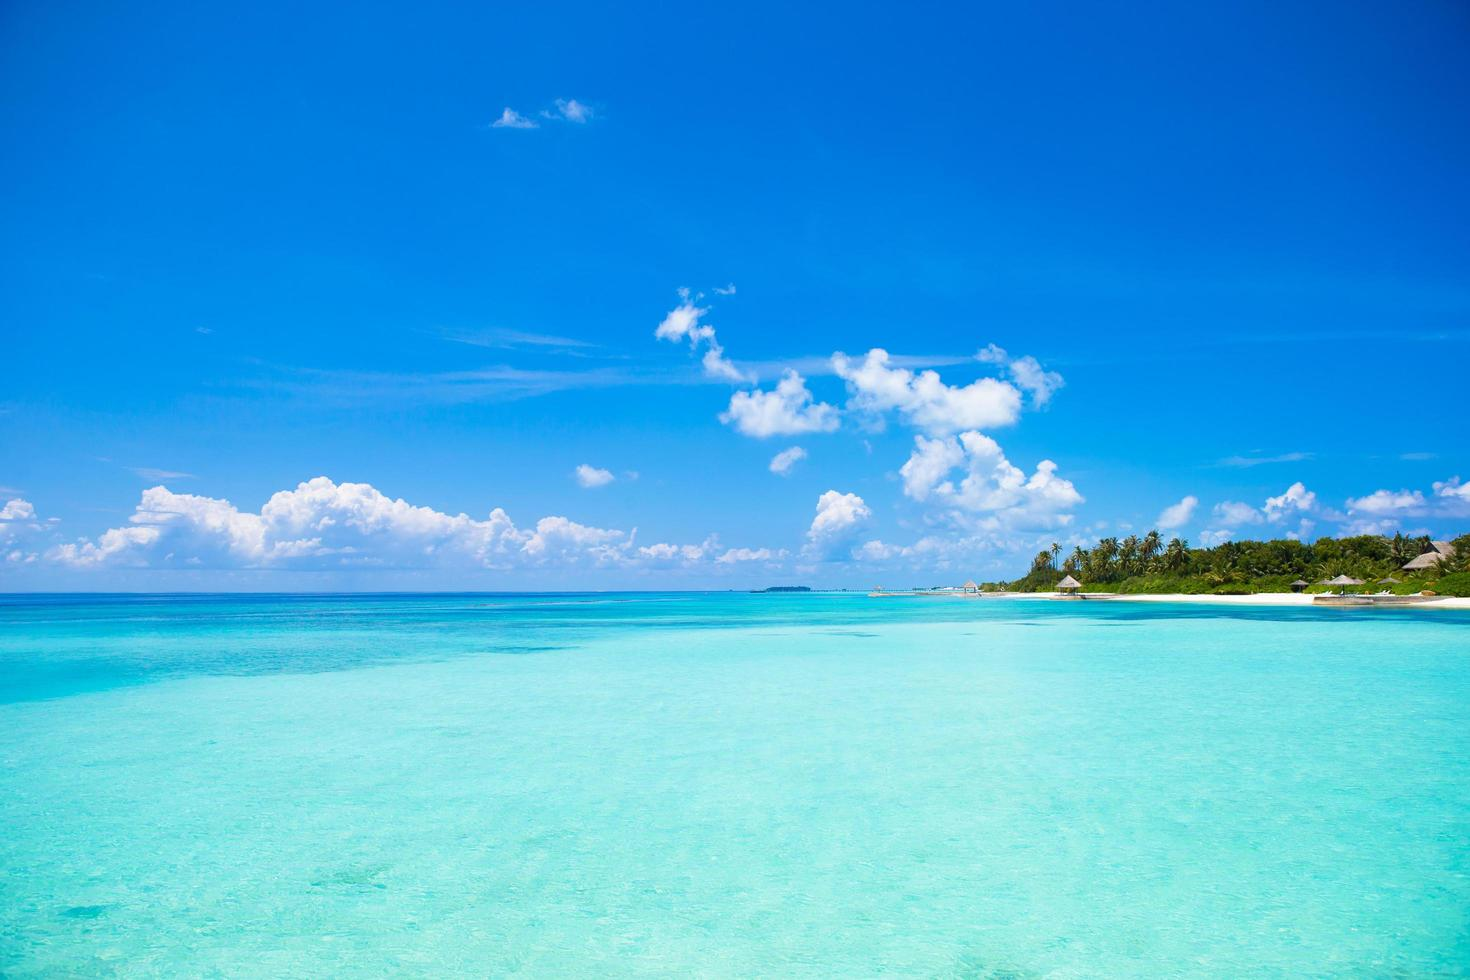 Turquoise water at a tropical beach photo